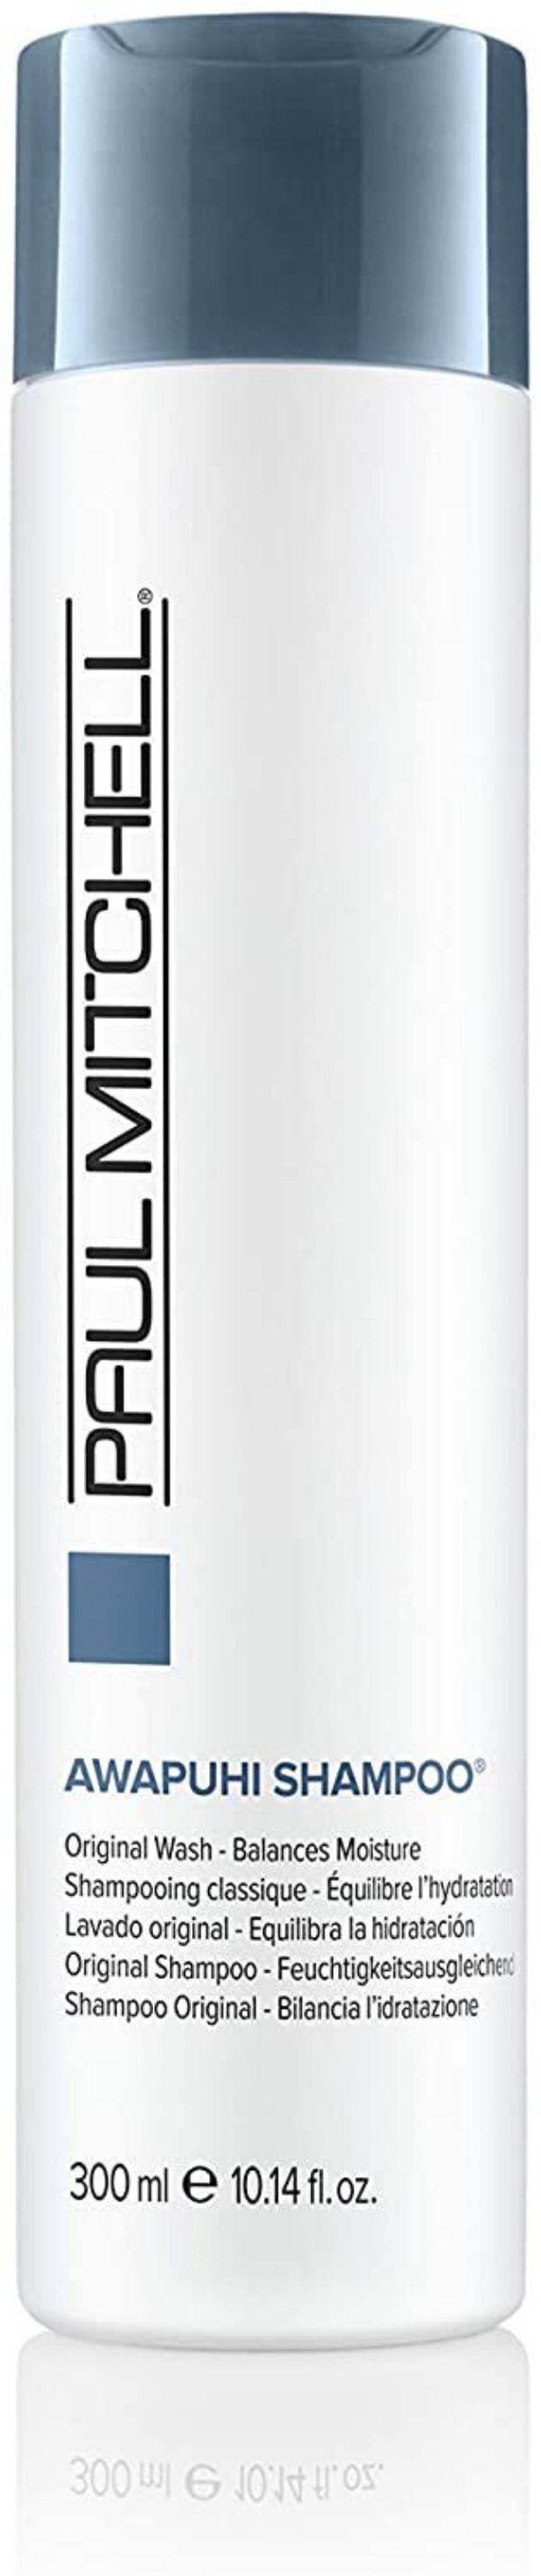 Shampoo Paul Mitchell Original Awapuhi 300ml